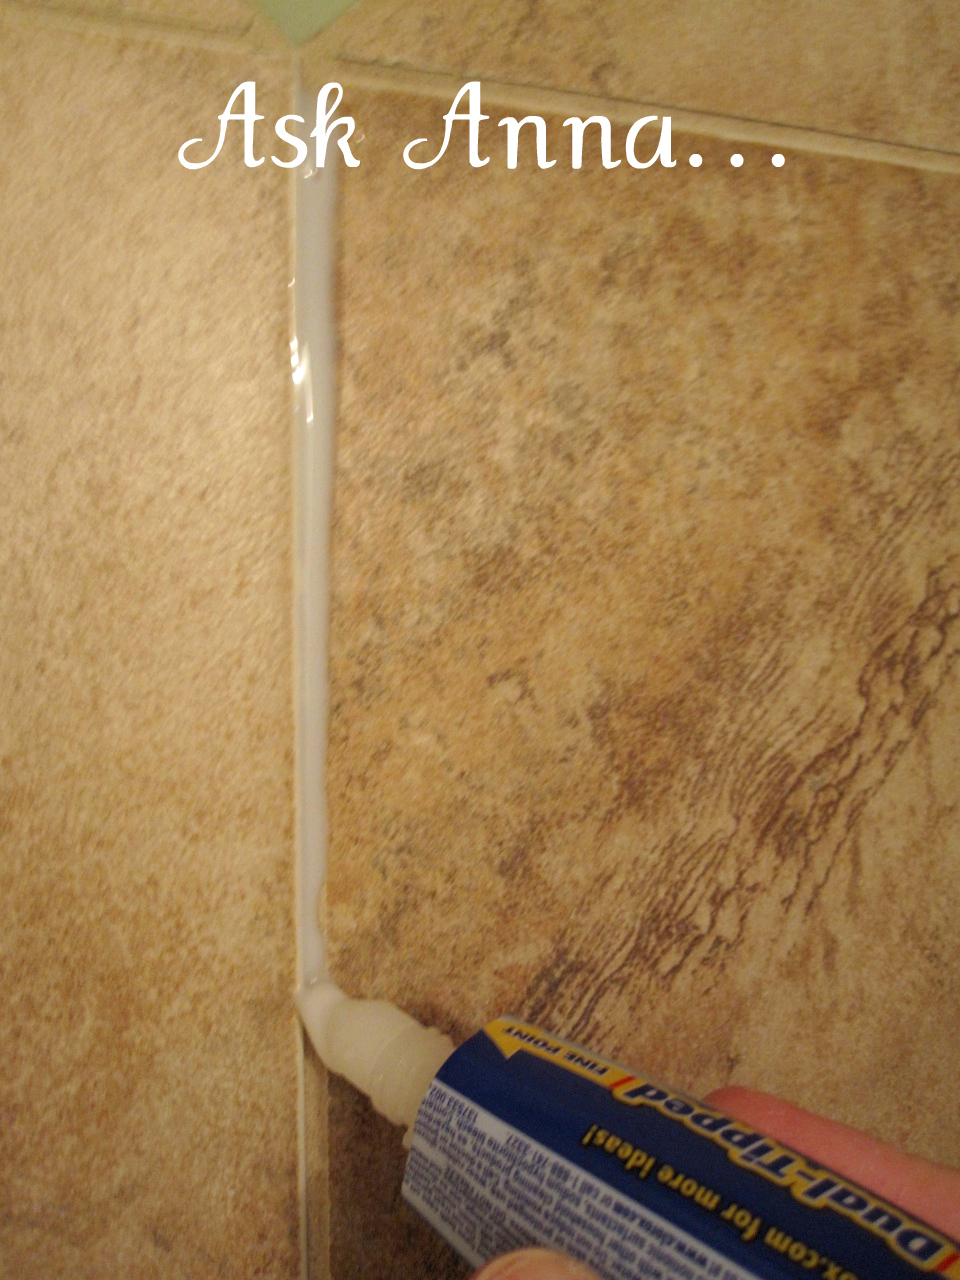 The Easiest Way To Clean Grout Ask Anna Cleaning Tips From - Clean and seal grout lines